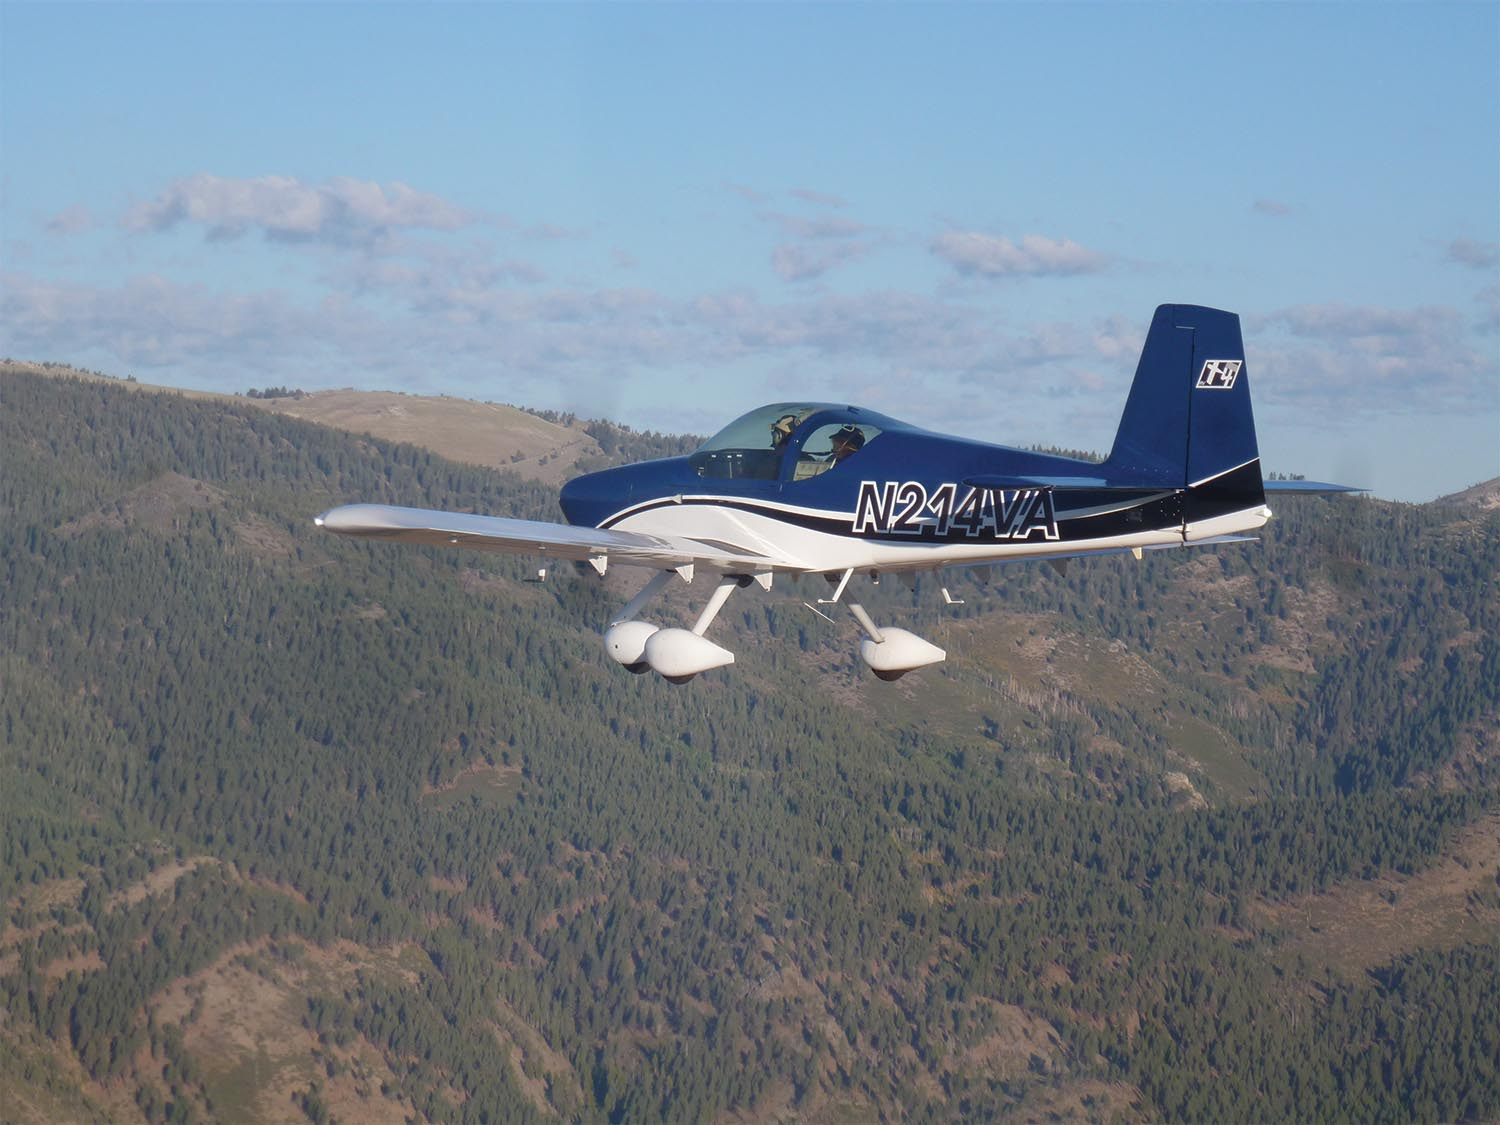 Doing a demo flight with an experienced transition trainer—as we did in the RV-14A with Mike Seager—gives you a chance to try out the edges of the airplane's performance. (Photo: Courtesy of Van's Aircraft, Inc.)